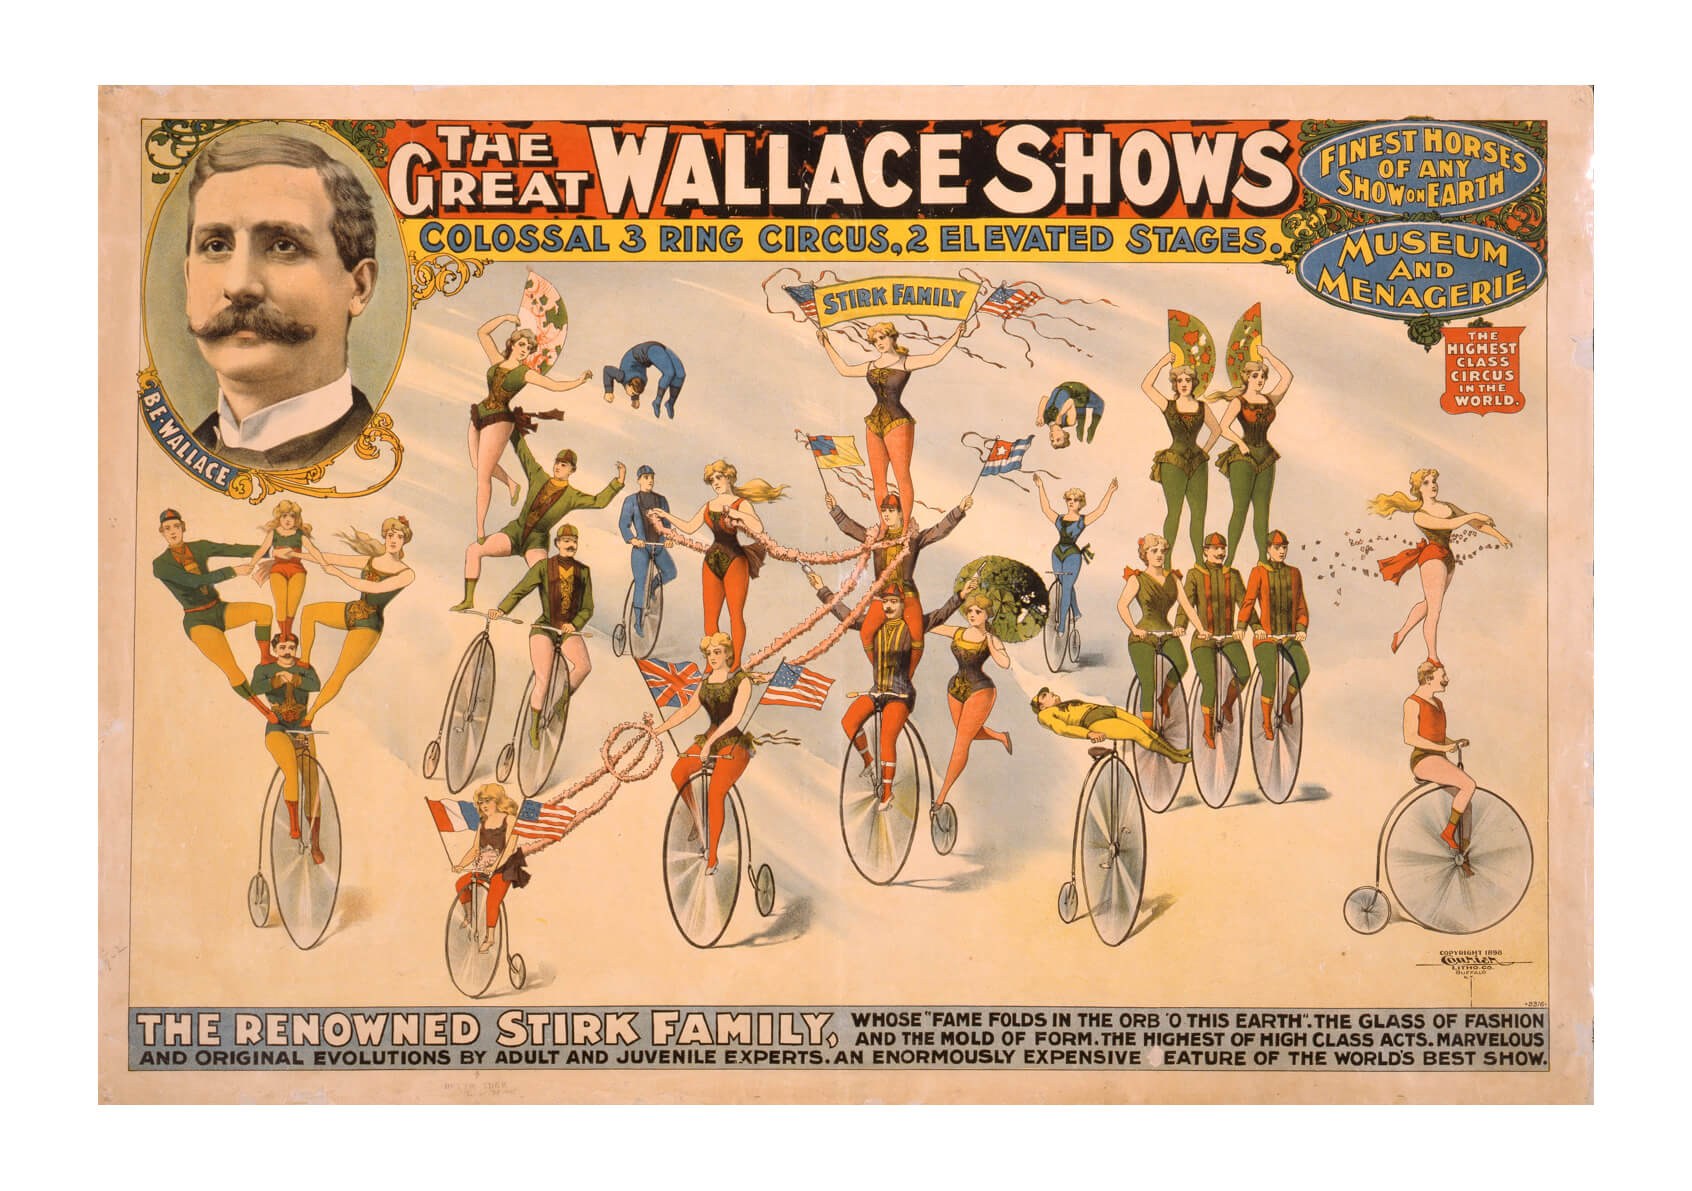 The Great Wallace Shows circus poster